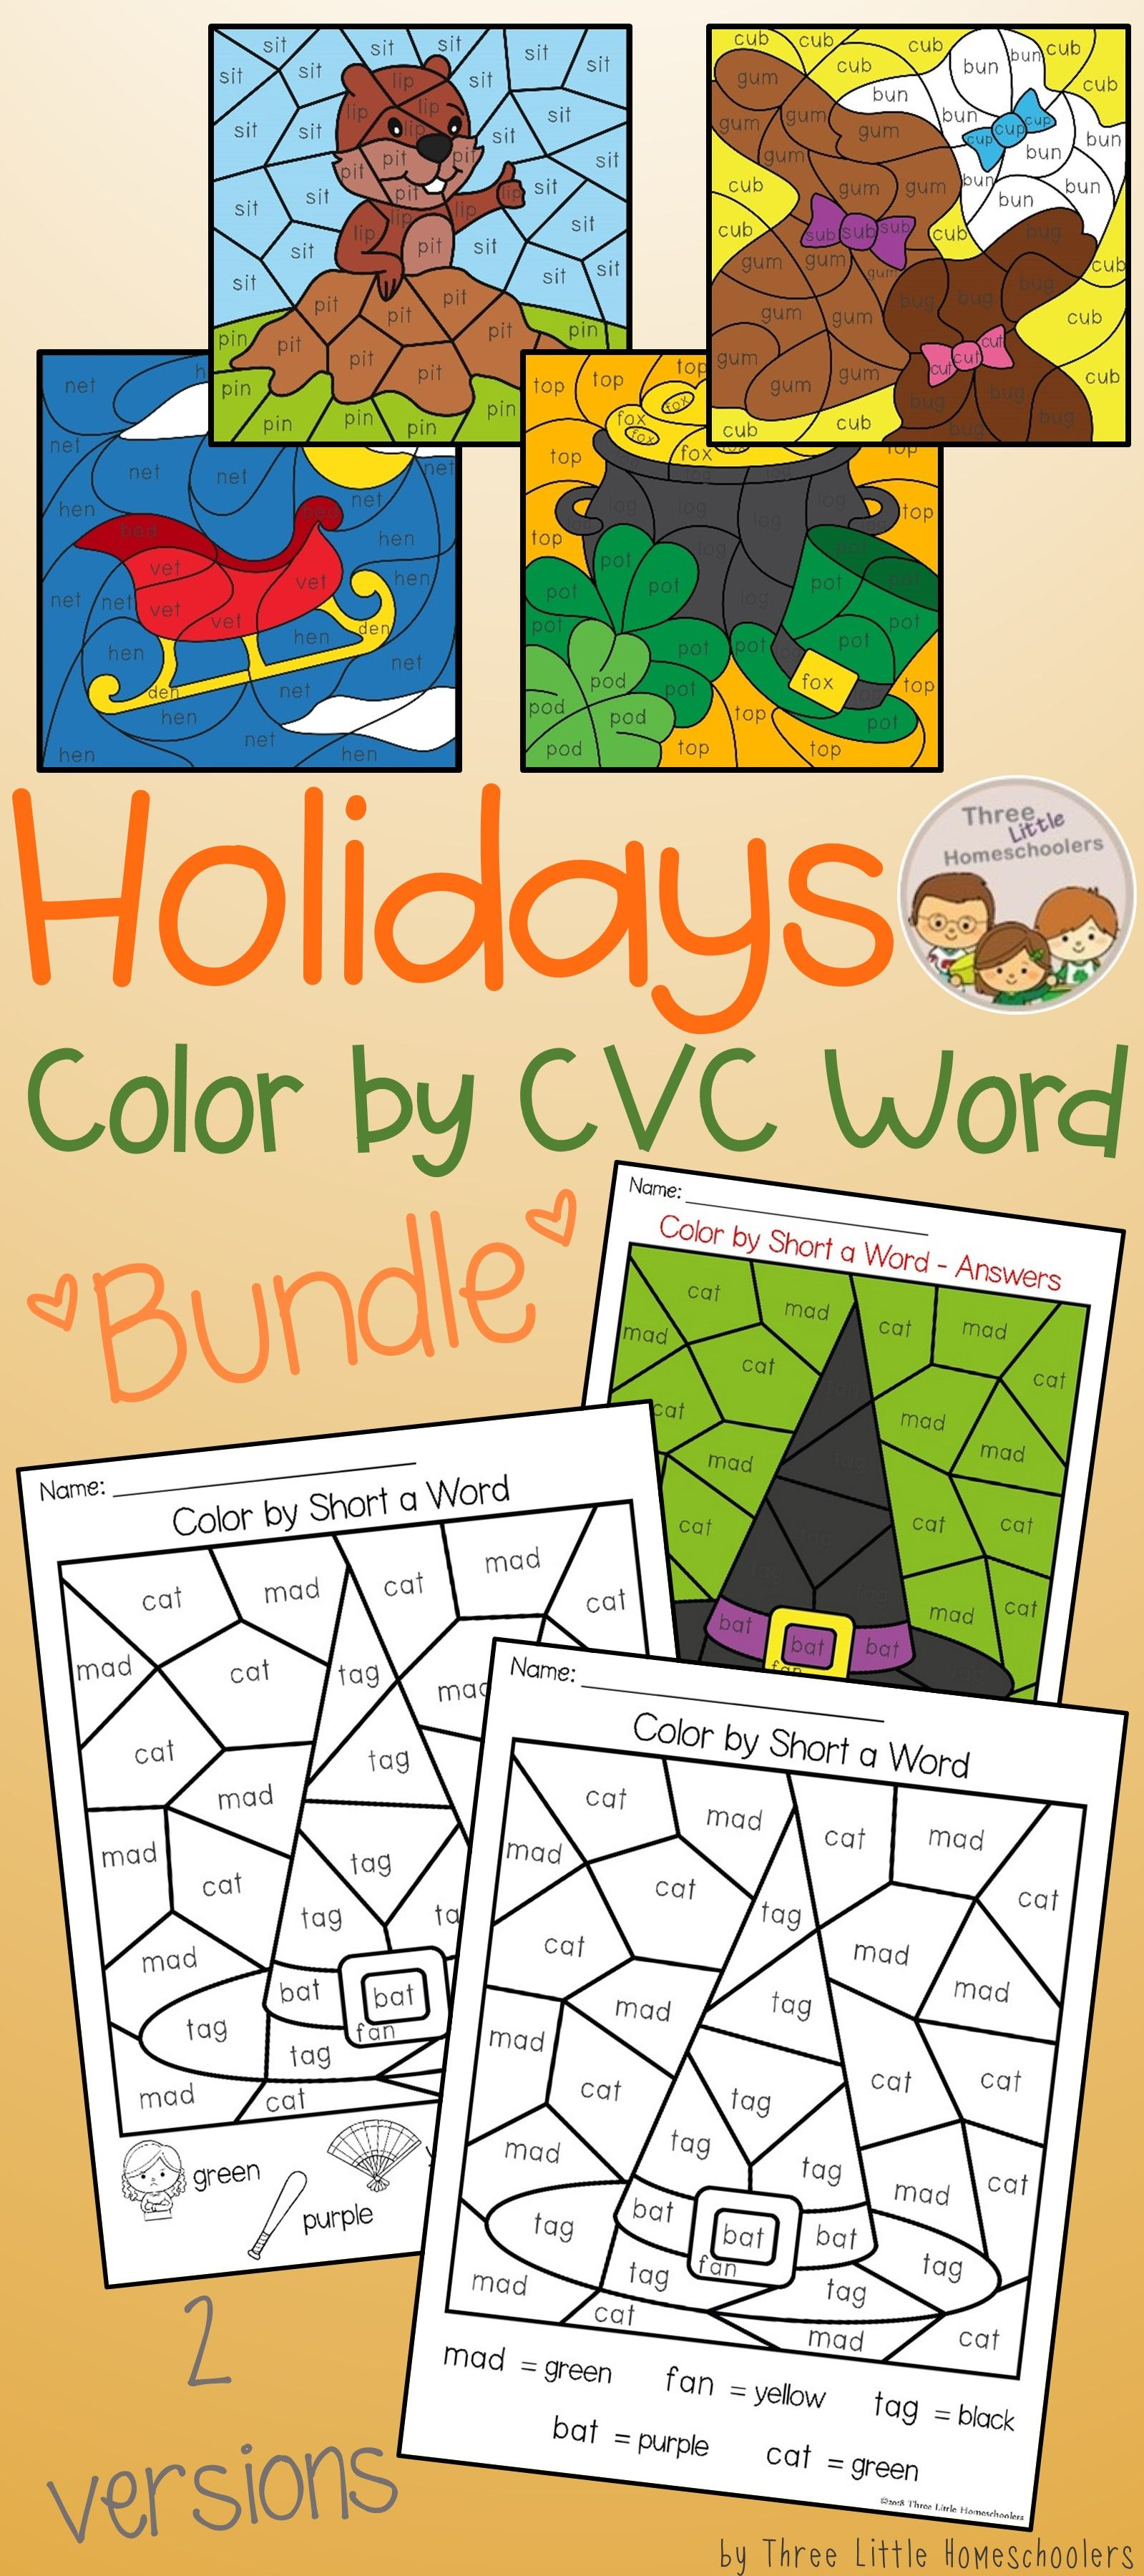 Color By Cvc Word Puzzles For 12 Holidays New Year S Eve